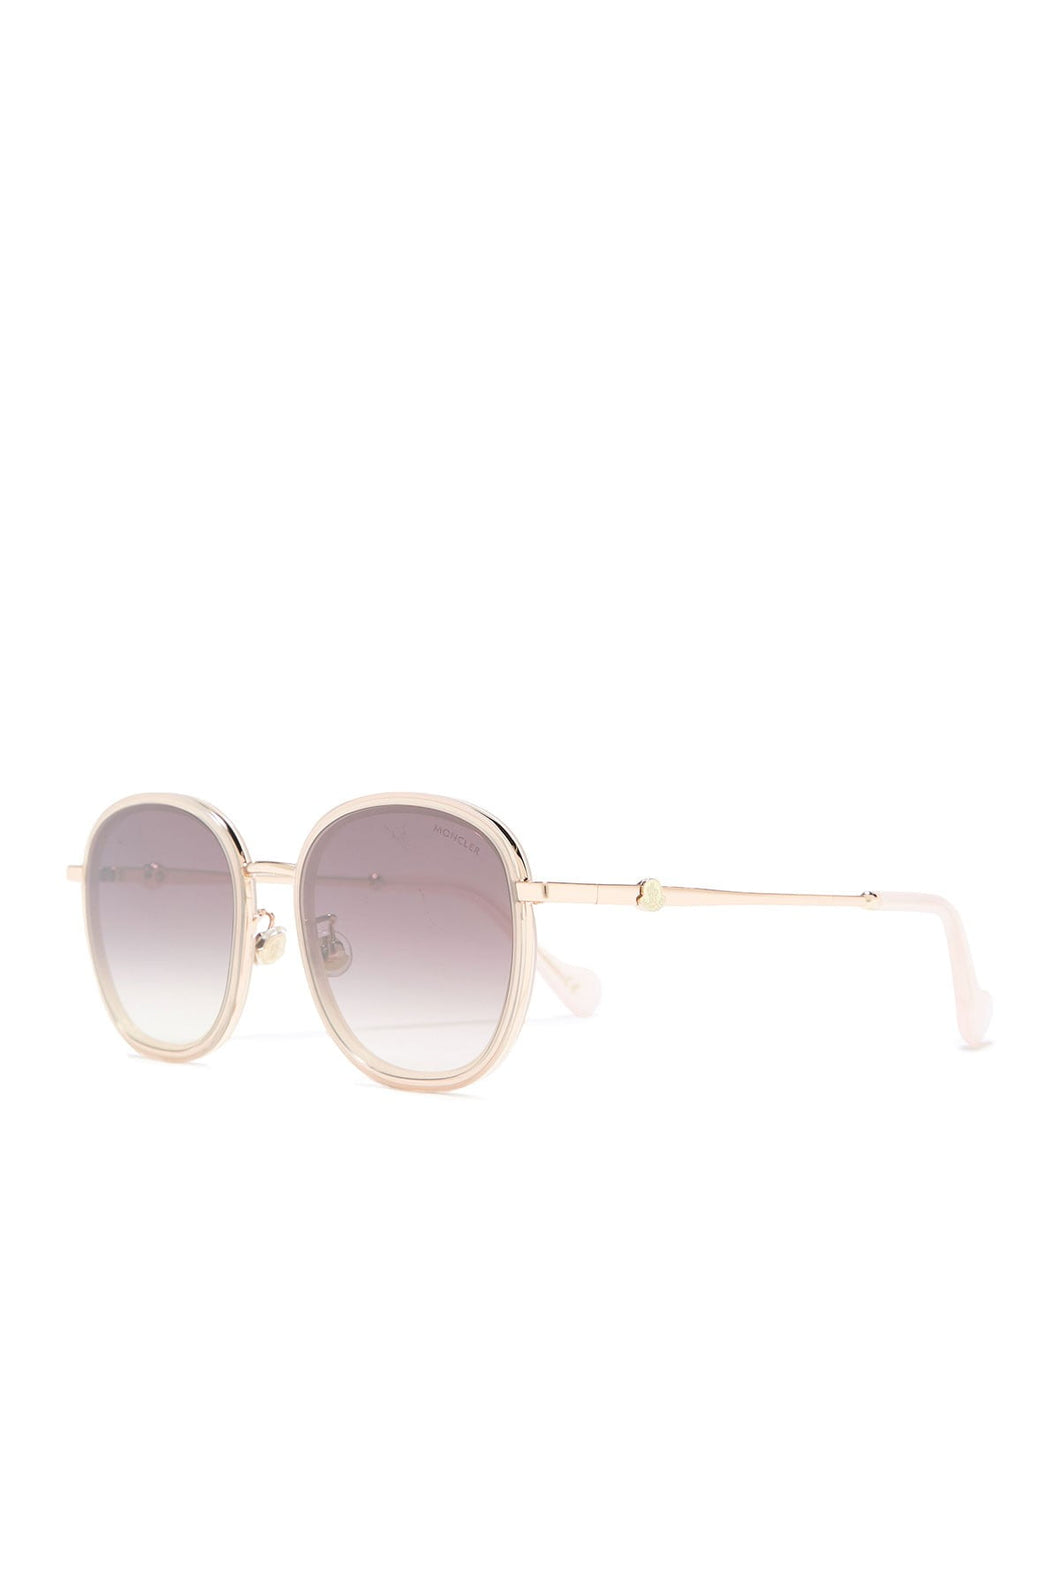 Moncler Round Sunglasses 57mm Rose